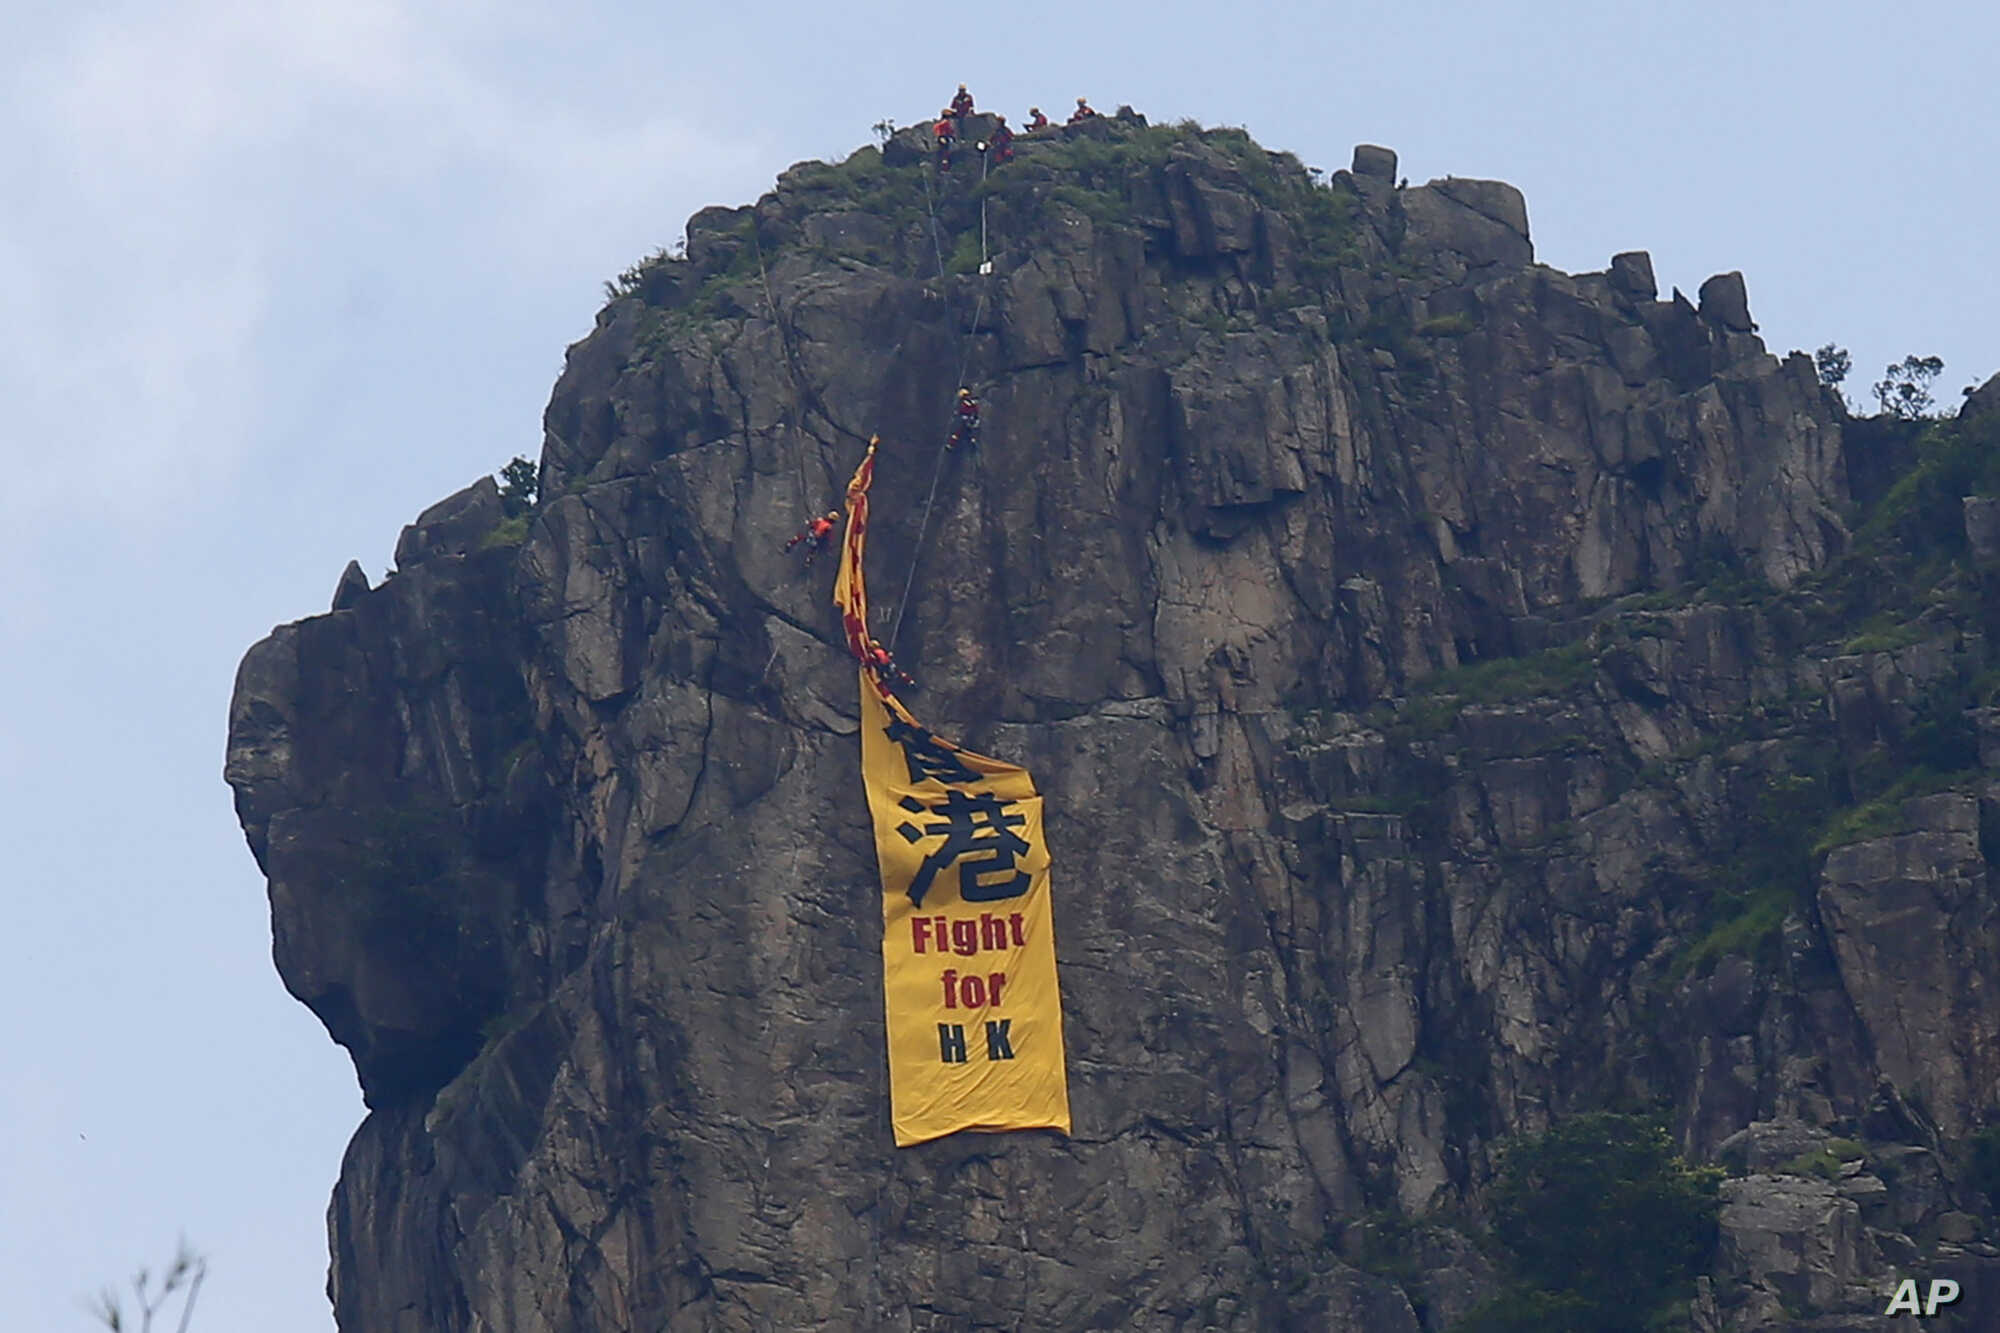 "Firefighters remove a yellow banner with the words ""Fight for Hong Kong"" in Chinese and English which is hung on the Lion Rock mountain by pro-democracy protesters in Hong Kong, Sunday, June 16, 2019. Hong Kong was bracing Sunday for another massive protest over an unpopular extradition bill that has highlighted the territory's apprehension about relations with mainland China, a week after the crisis brought as many as 1 million into the streets. (AP Photo/Kin Cheung)"